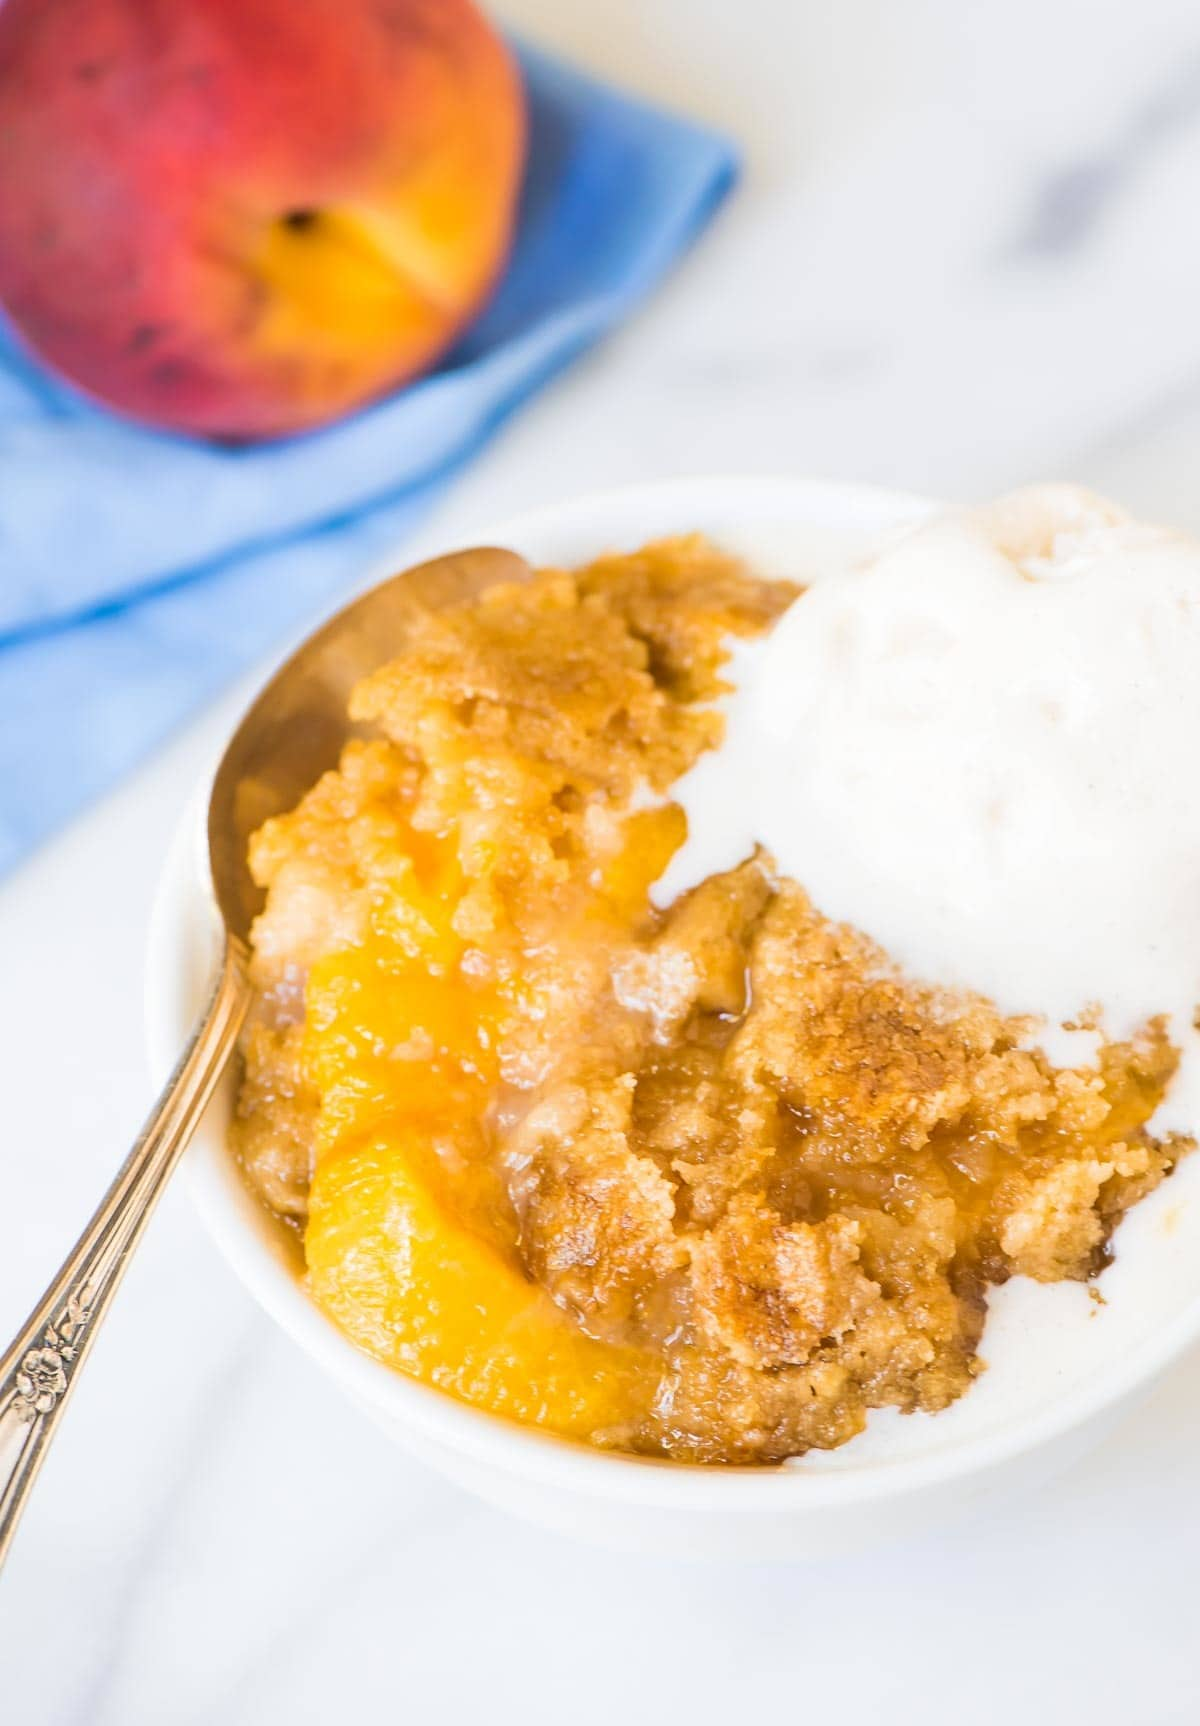 Crock Pot Peach Cobbler — This recipe is so EASY and it tastes amazing! Just dump the ingredients into your slow cooker and walk away. Tastes like a peach dump dessert, but so much better — made with real ingredients and fresh peaches instead of boxed cake mix or canned. @wellplated